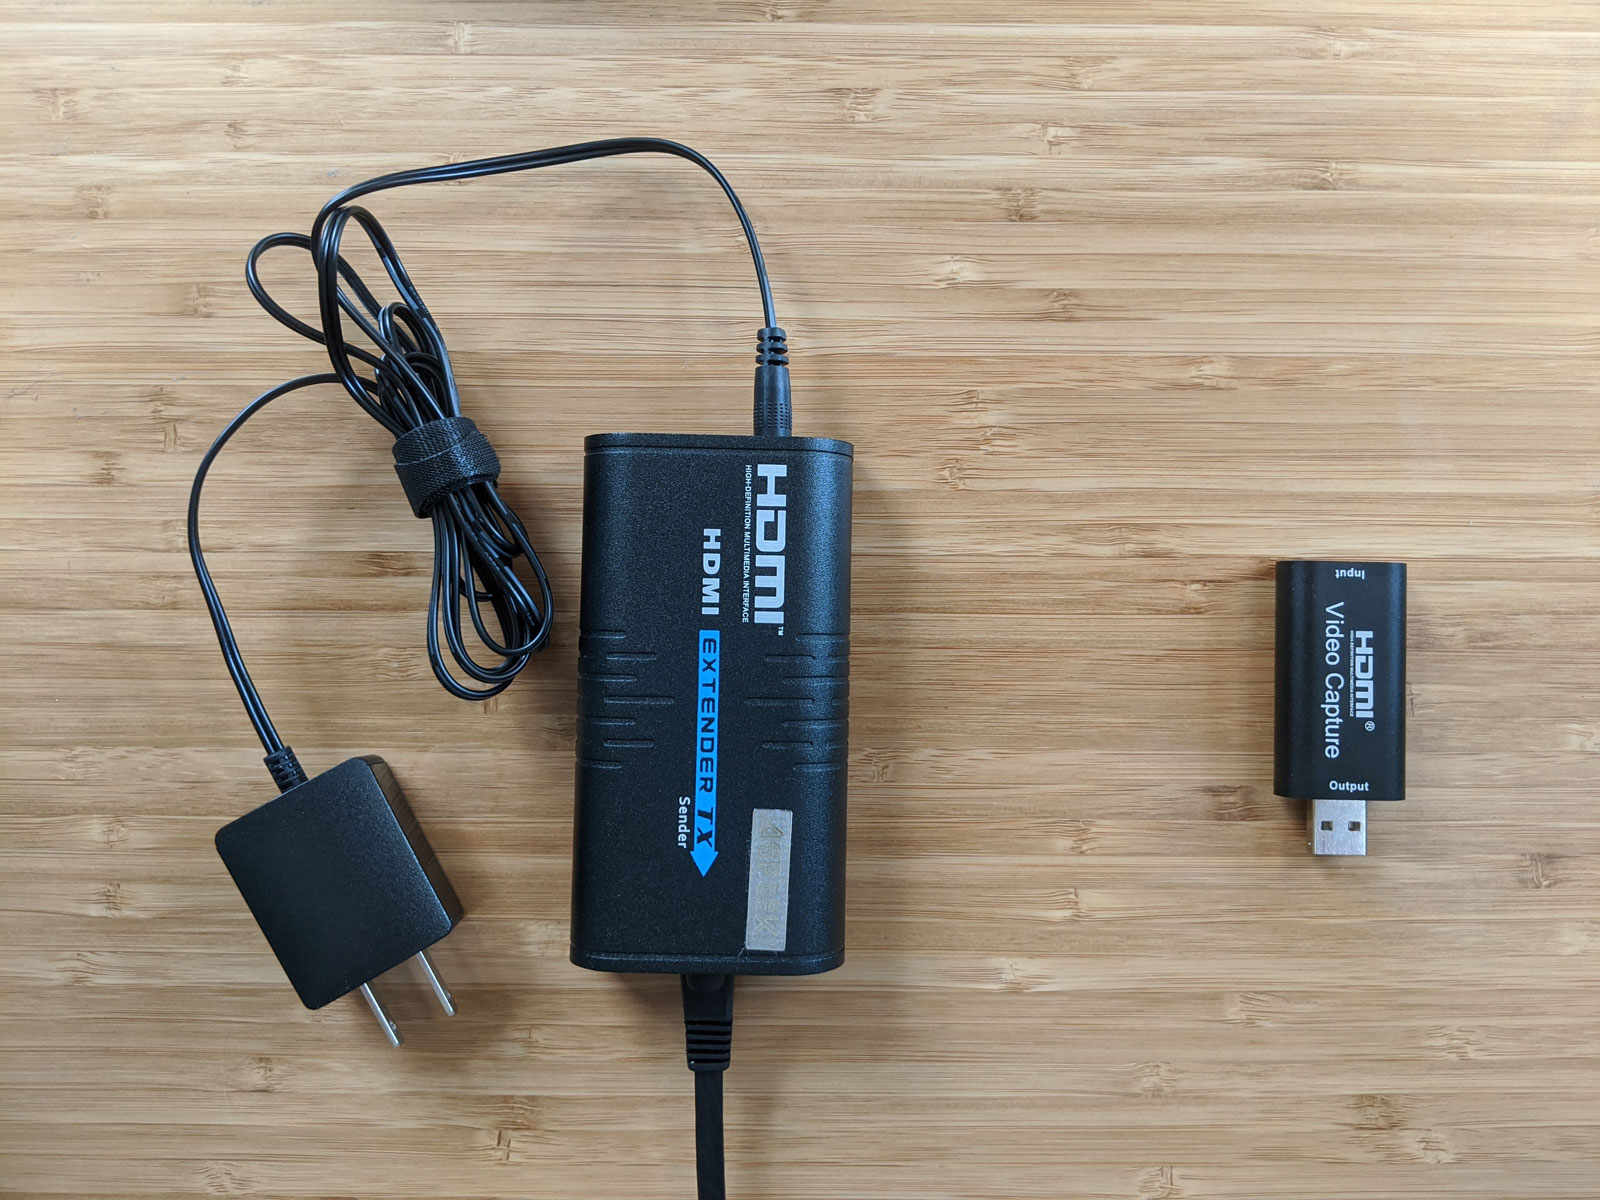 Comparison of Lenkeng LKV373A with HDMI dongle